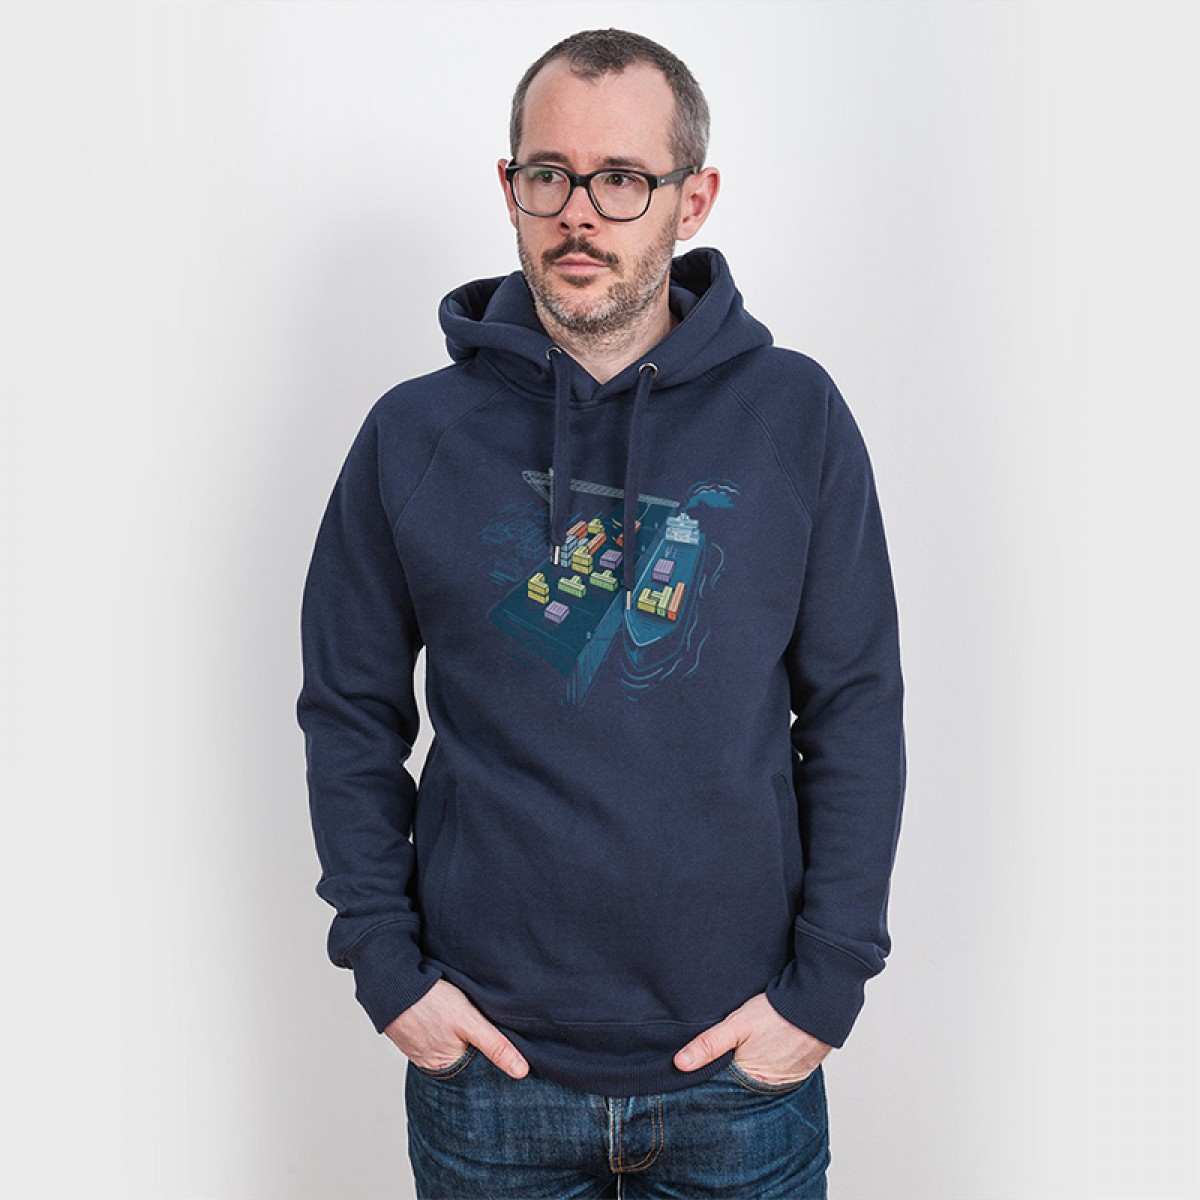 Robert Richter – Game Port - Organic Cotton Unisex Hoodie